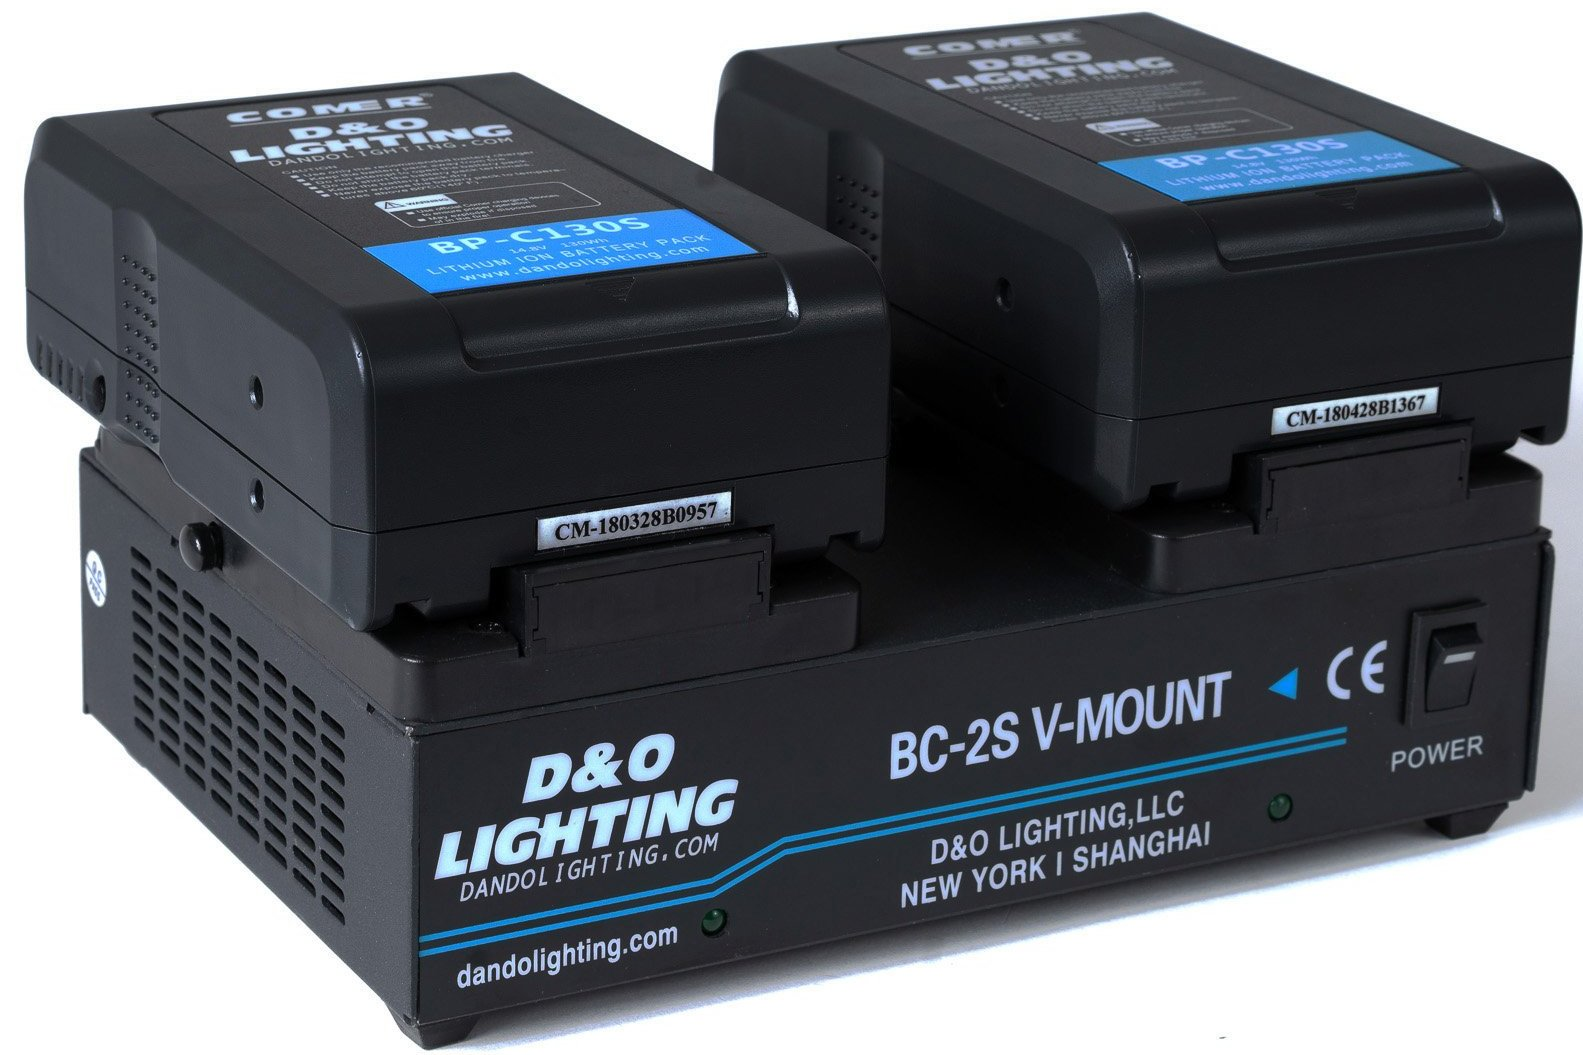 Two 130Wh V-Mount Batteries & Power Station Bundle